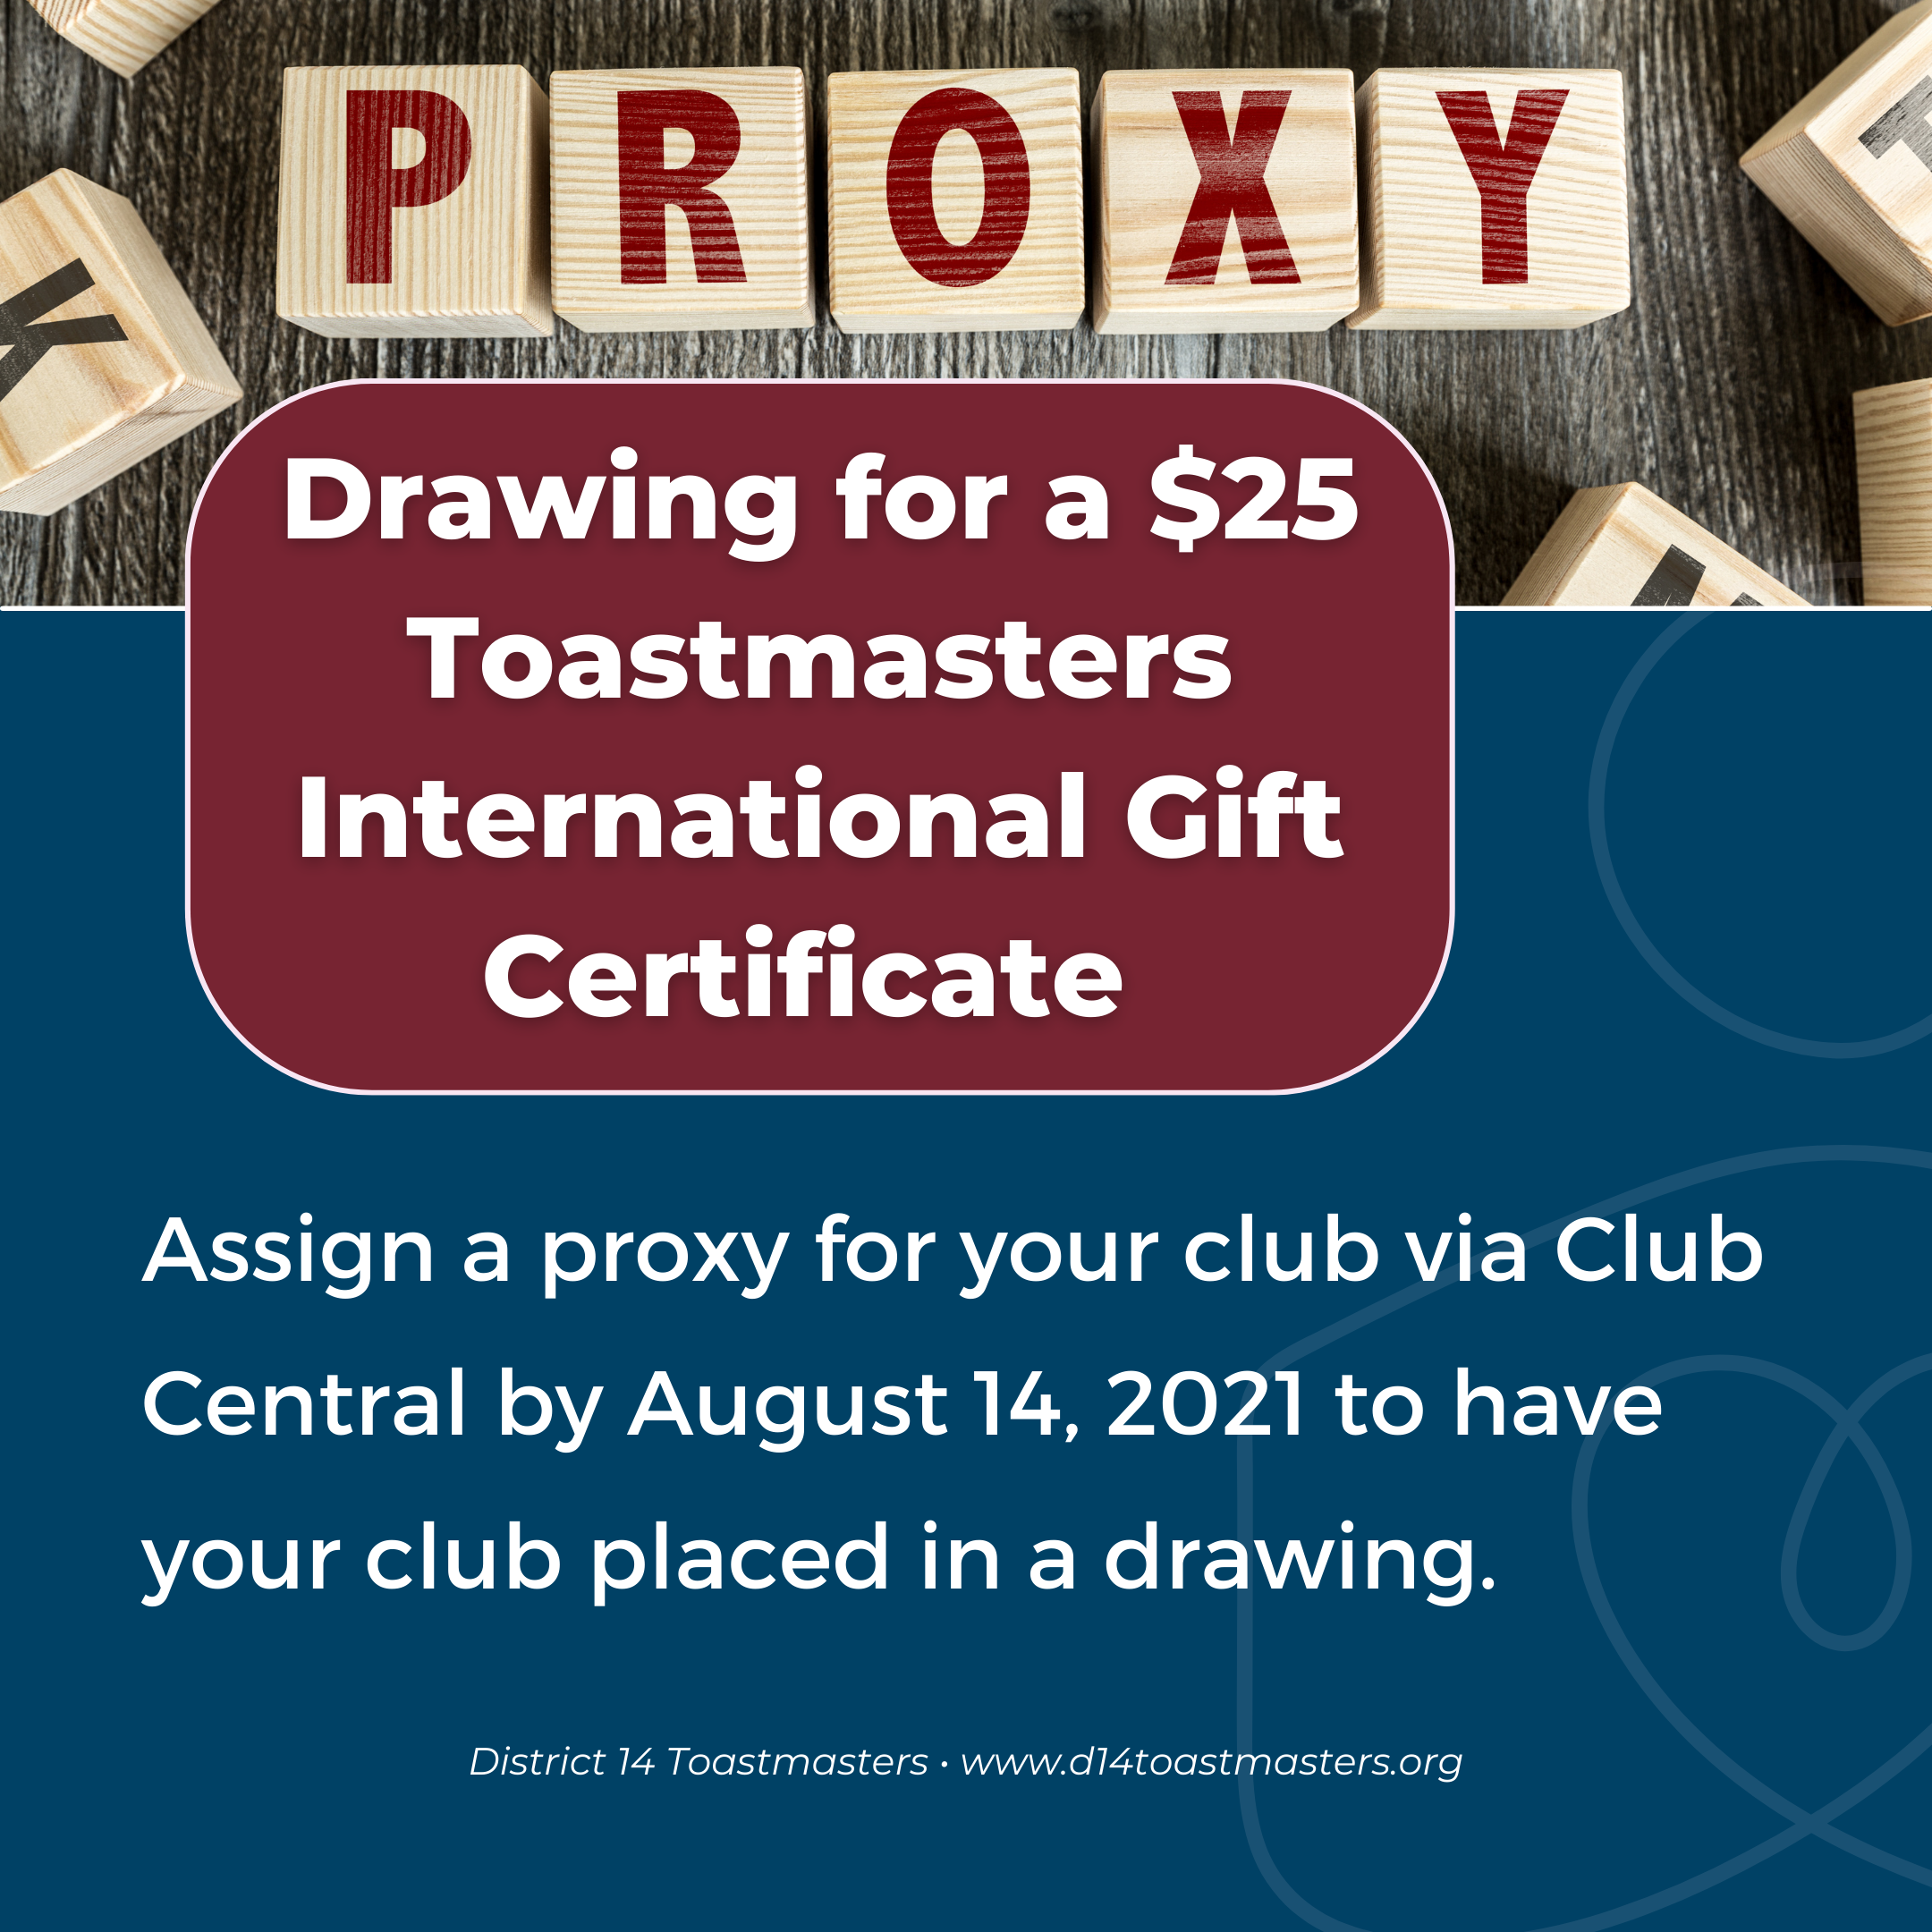 Drawing for a $25 Toastmasters International Gift Certificate